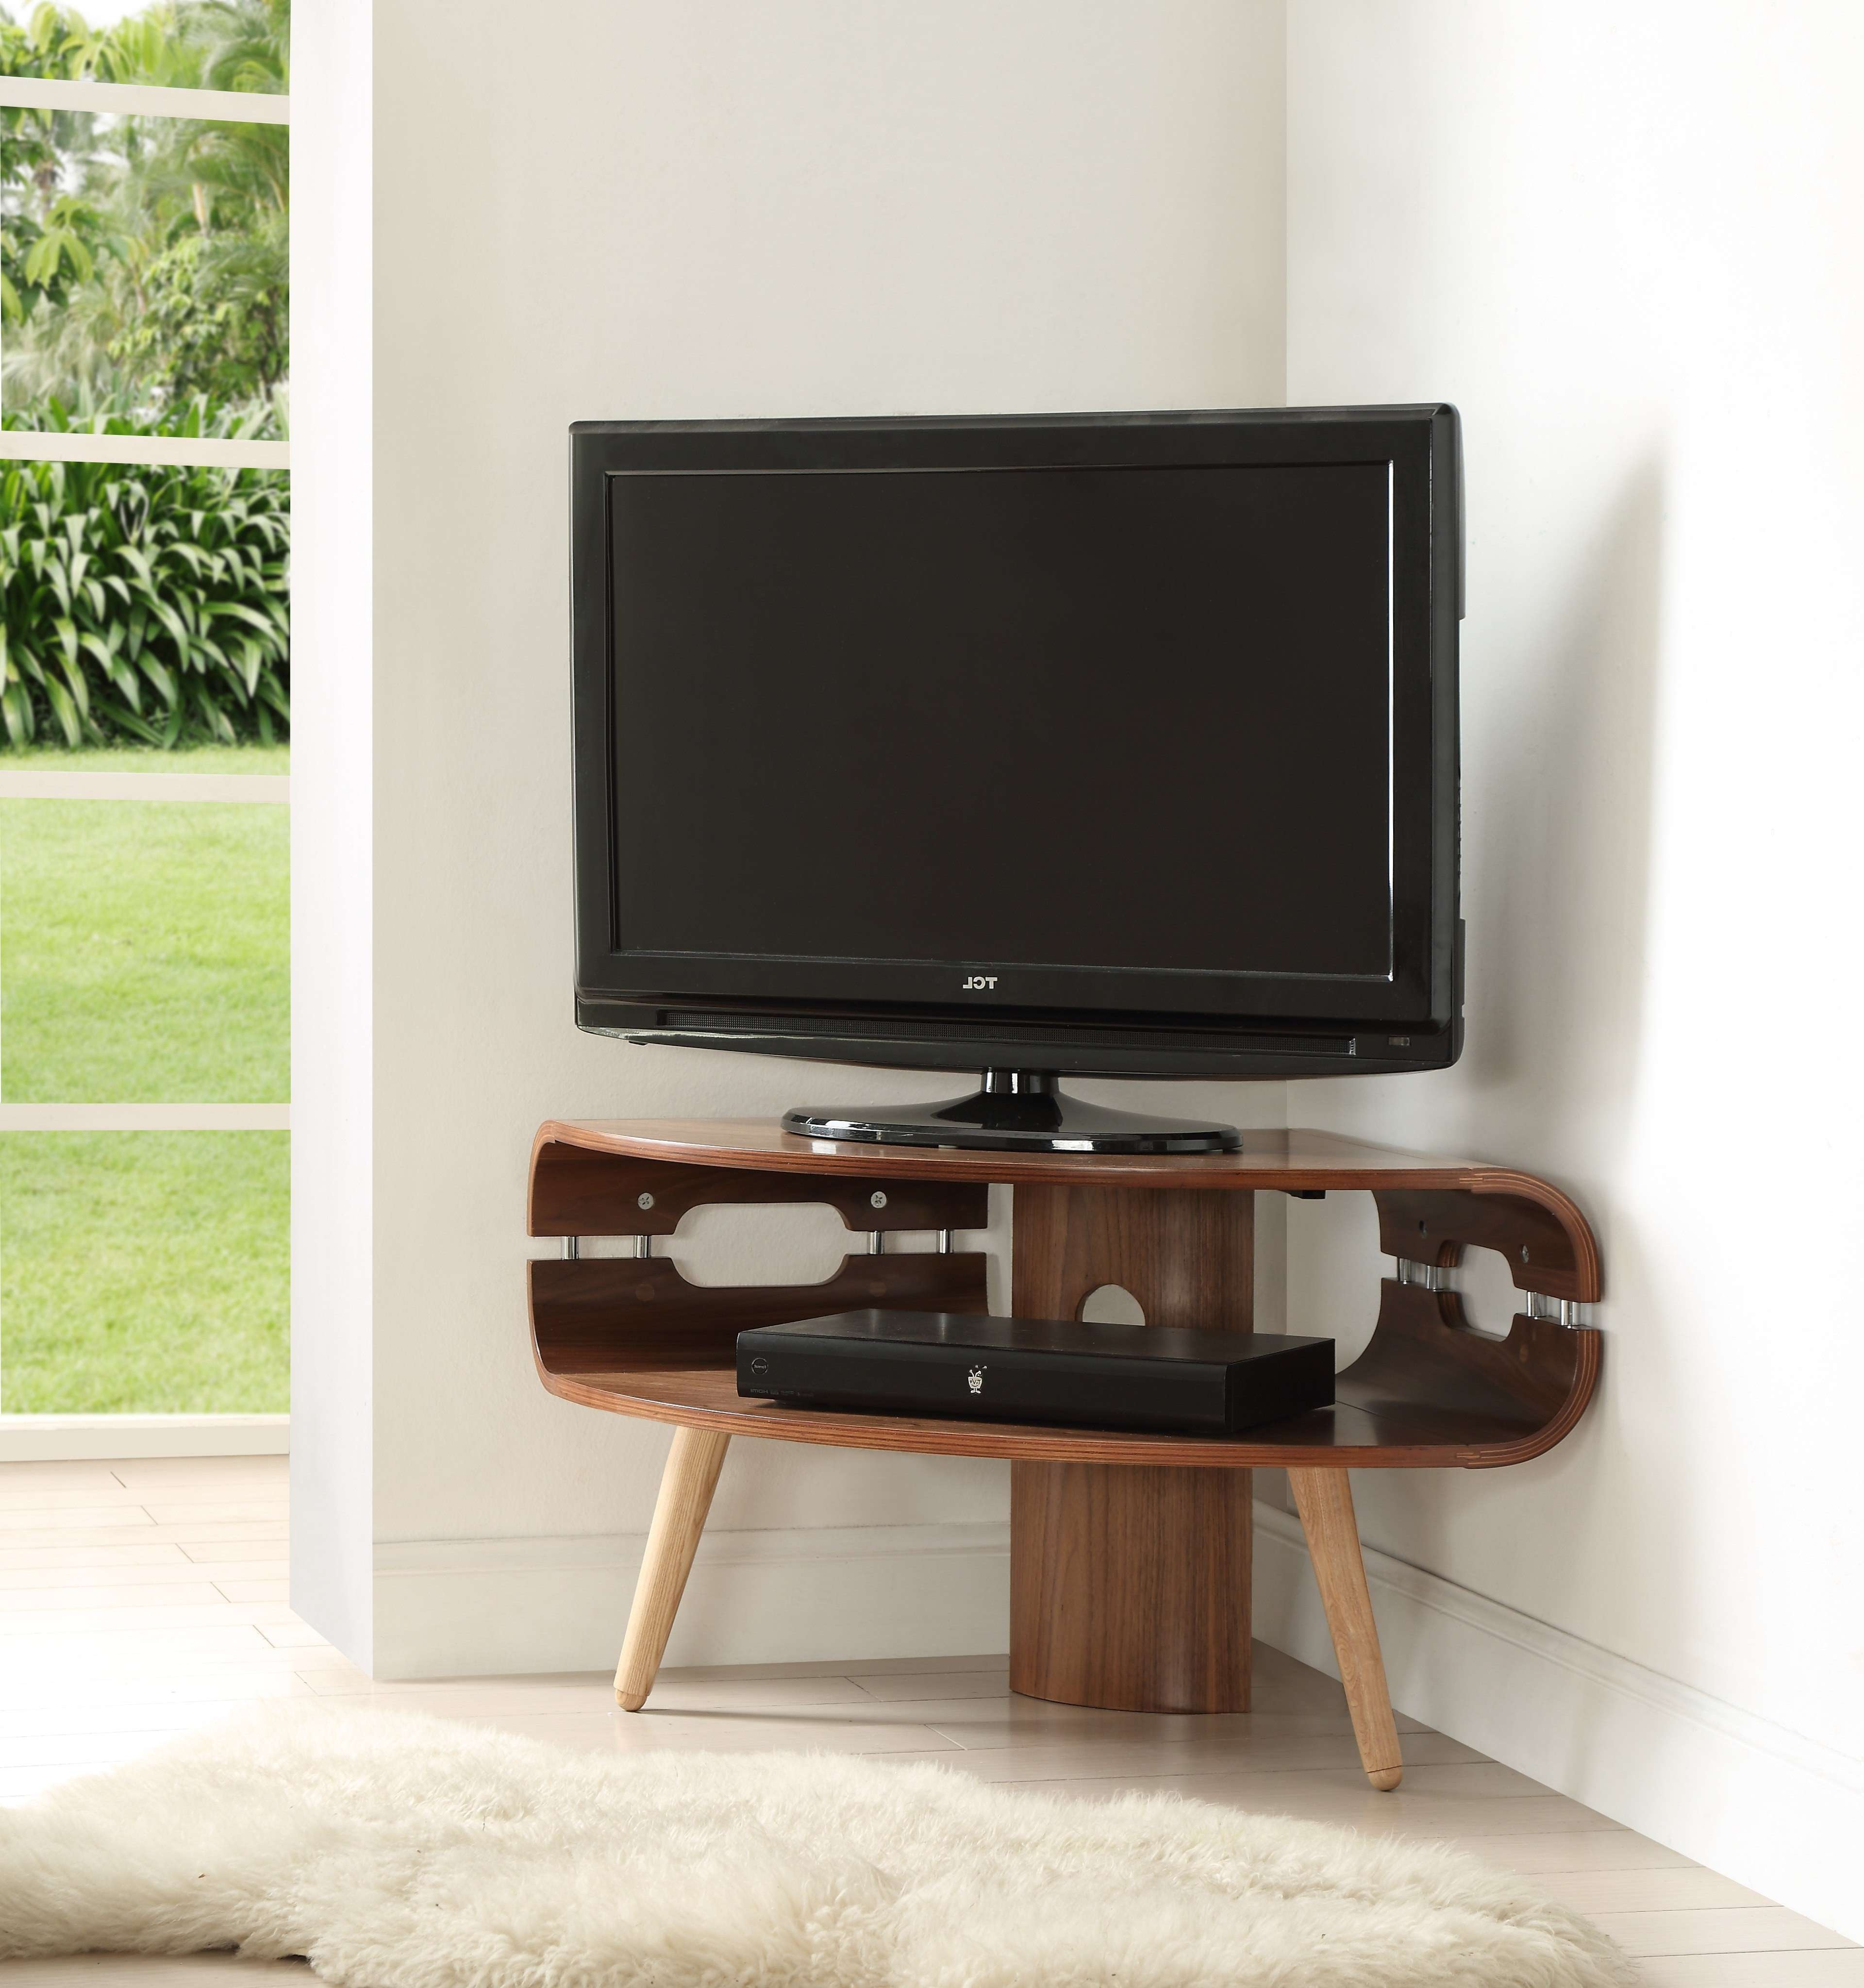 Jf701 Corner Tv Stand – Cooks Inside Cornet Tv Stands (Gallery 2 of 15)